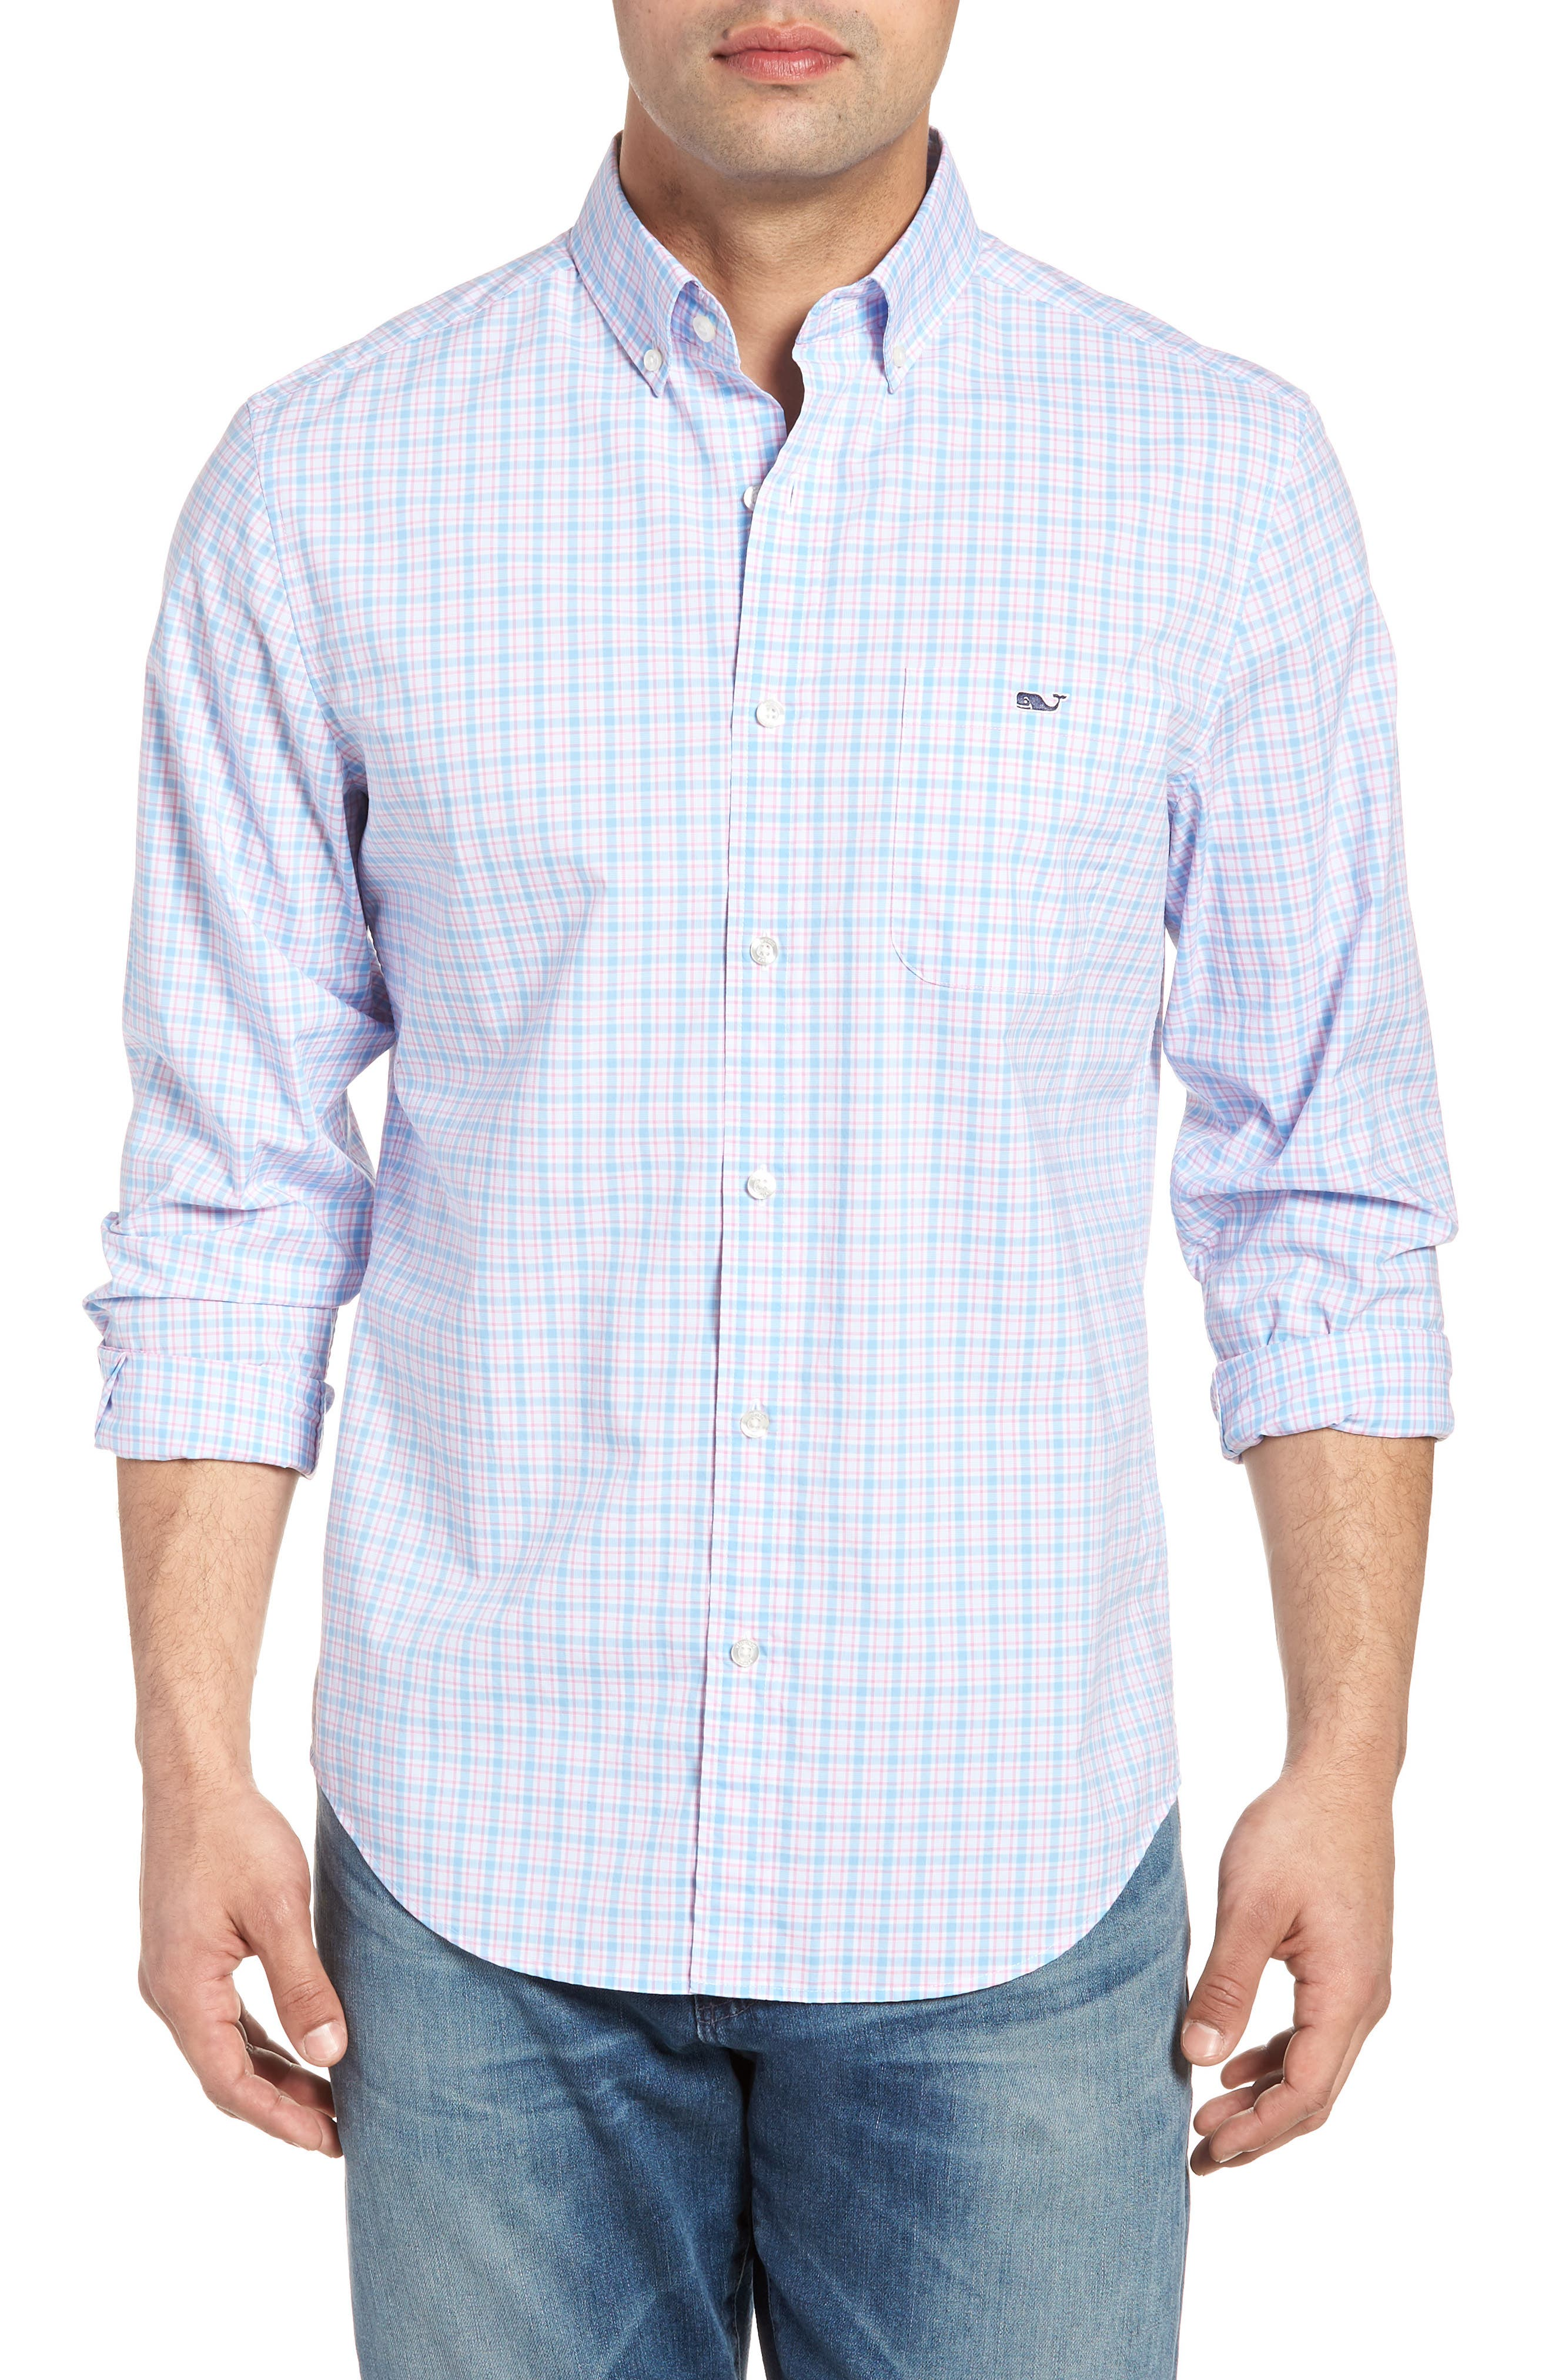 Captain Lyford Classic Fit Stretch Check Sport Shirt,                             Main thumbnail 1, color,                             484